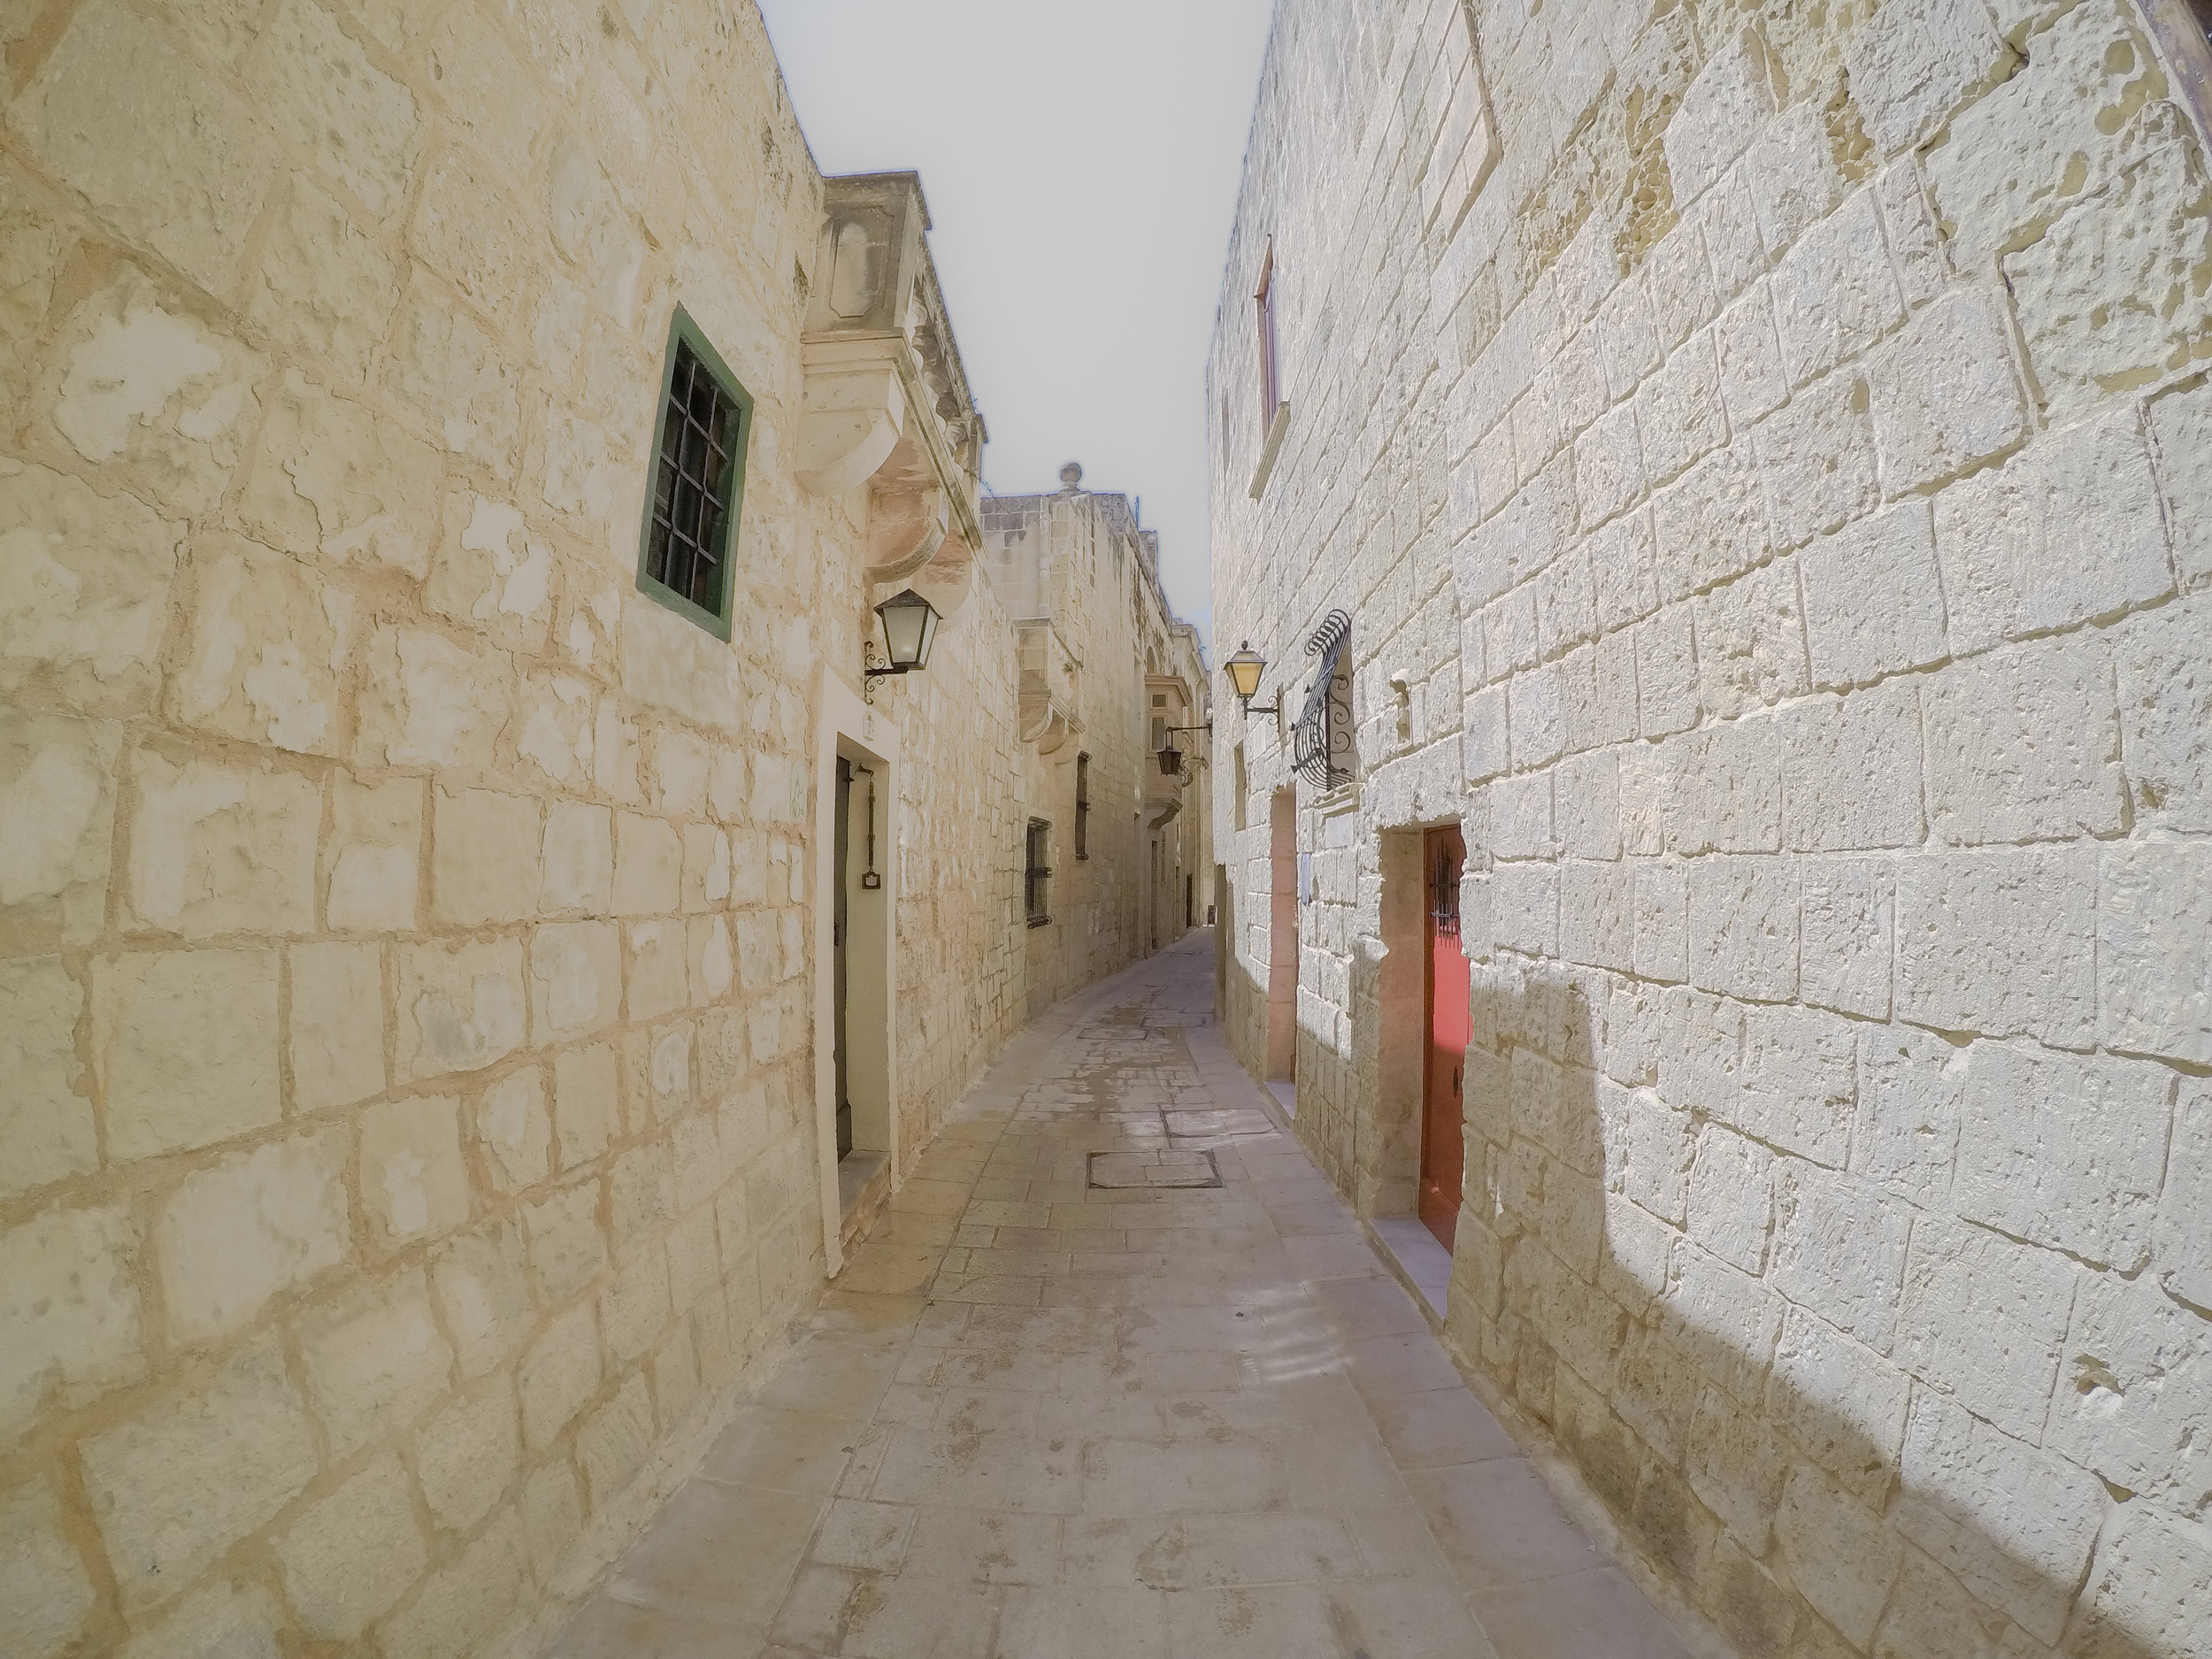 Medina   Streets of Malta   Mdina   - Thinking About Appreciation For Quality In Malta   Malta, Europe   DoLessGetMoreDone.com   - GoPro Minimal Travel Documentary Photography - search for Liveability   Sustainability